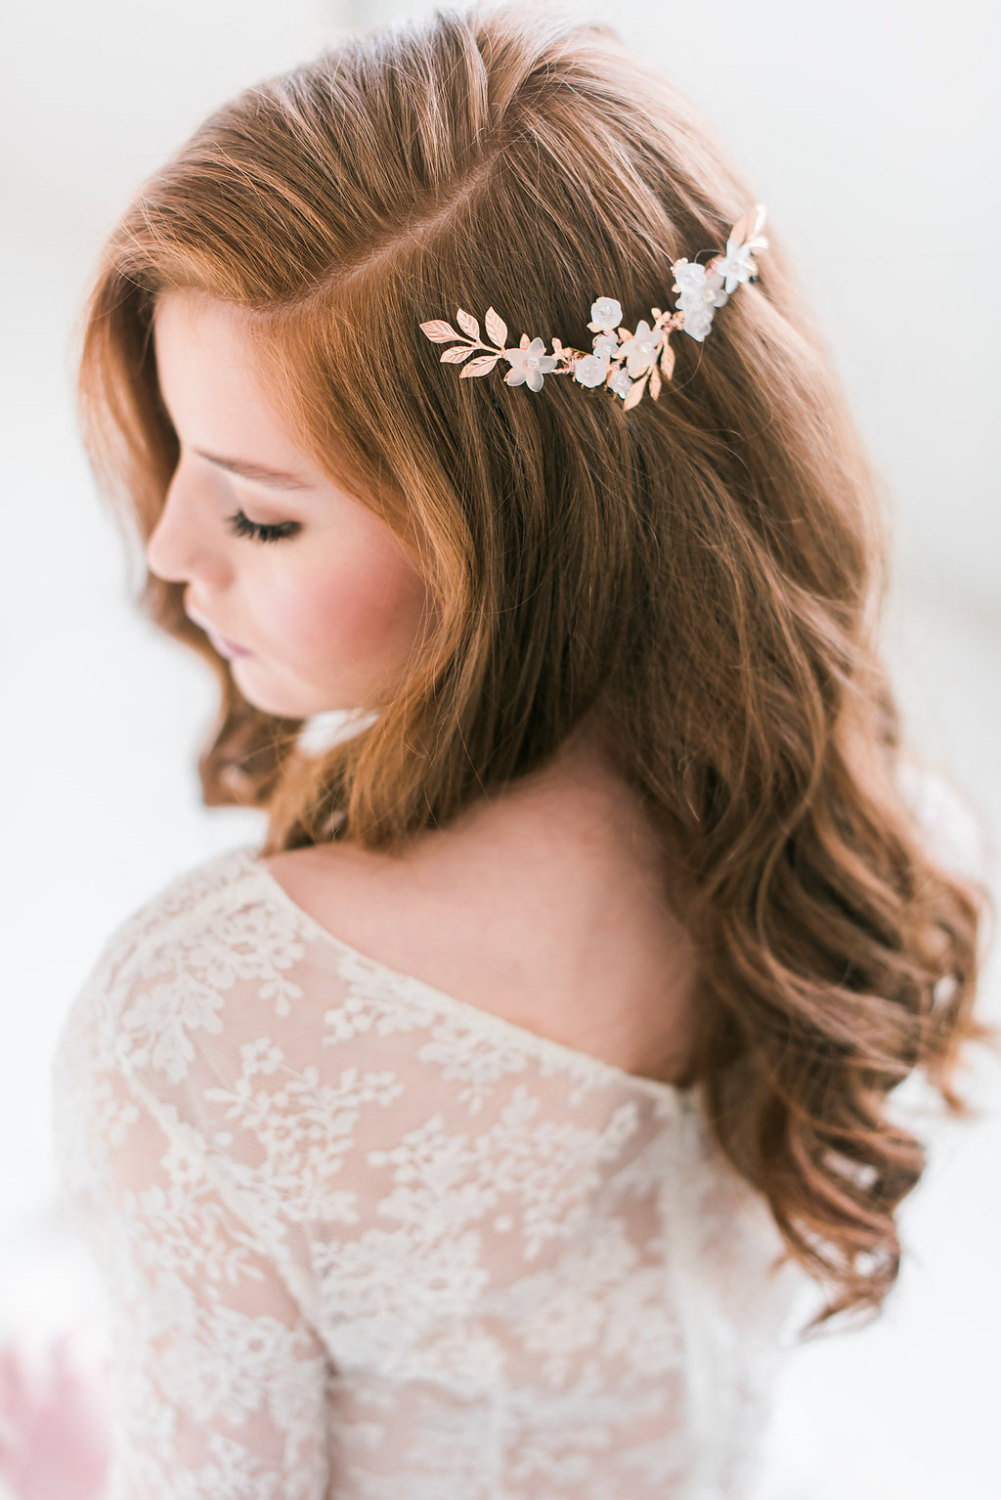 bridal hair accessories hair down styles | designed by tessa kim | photo by deyla huss